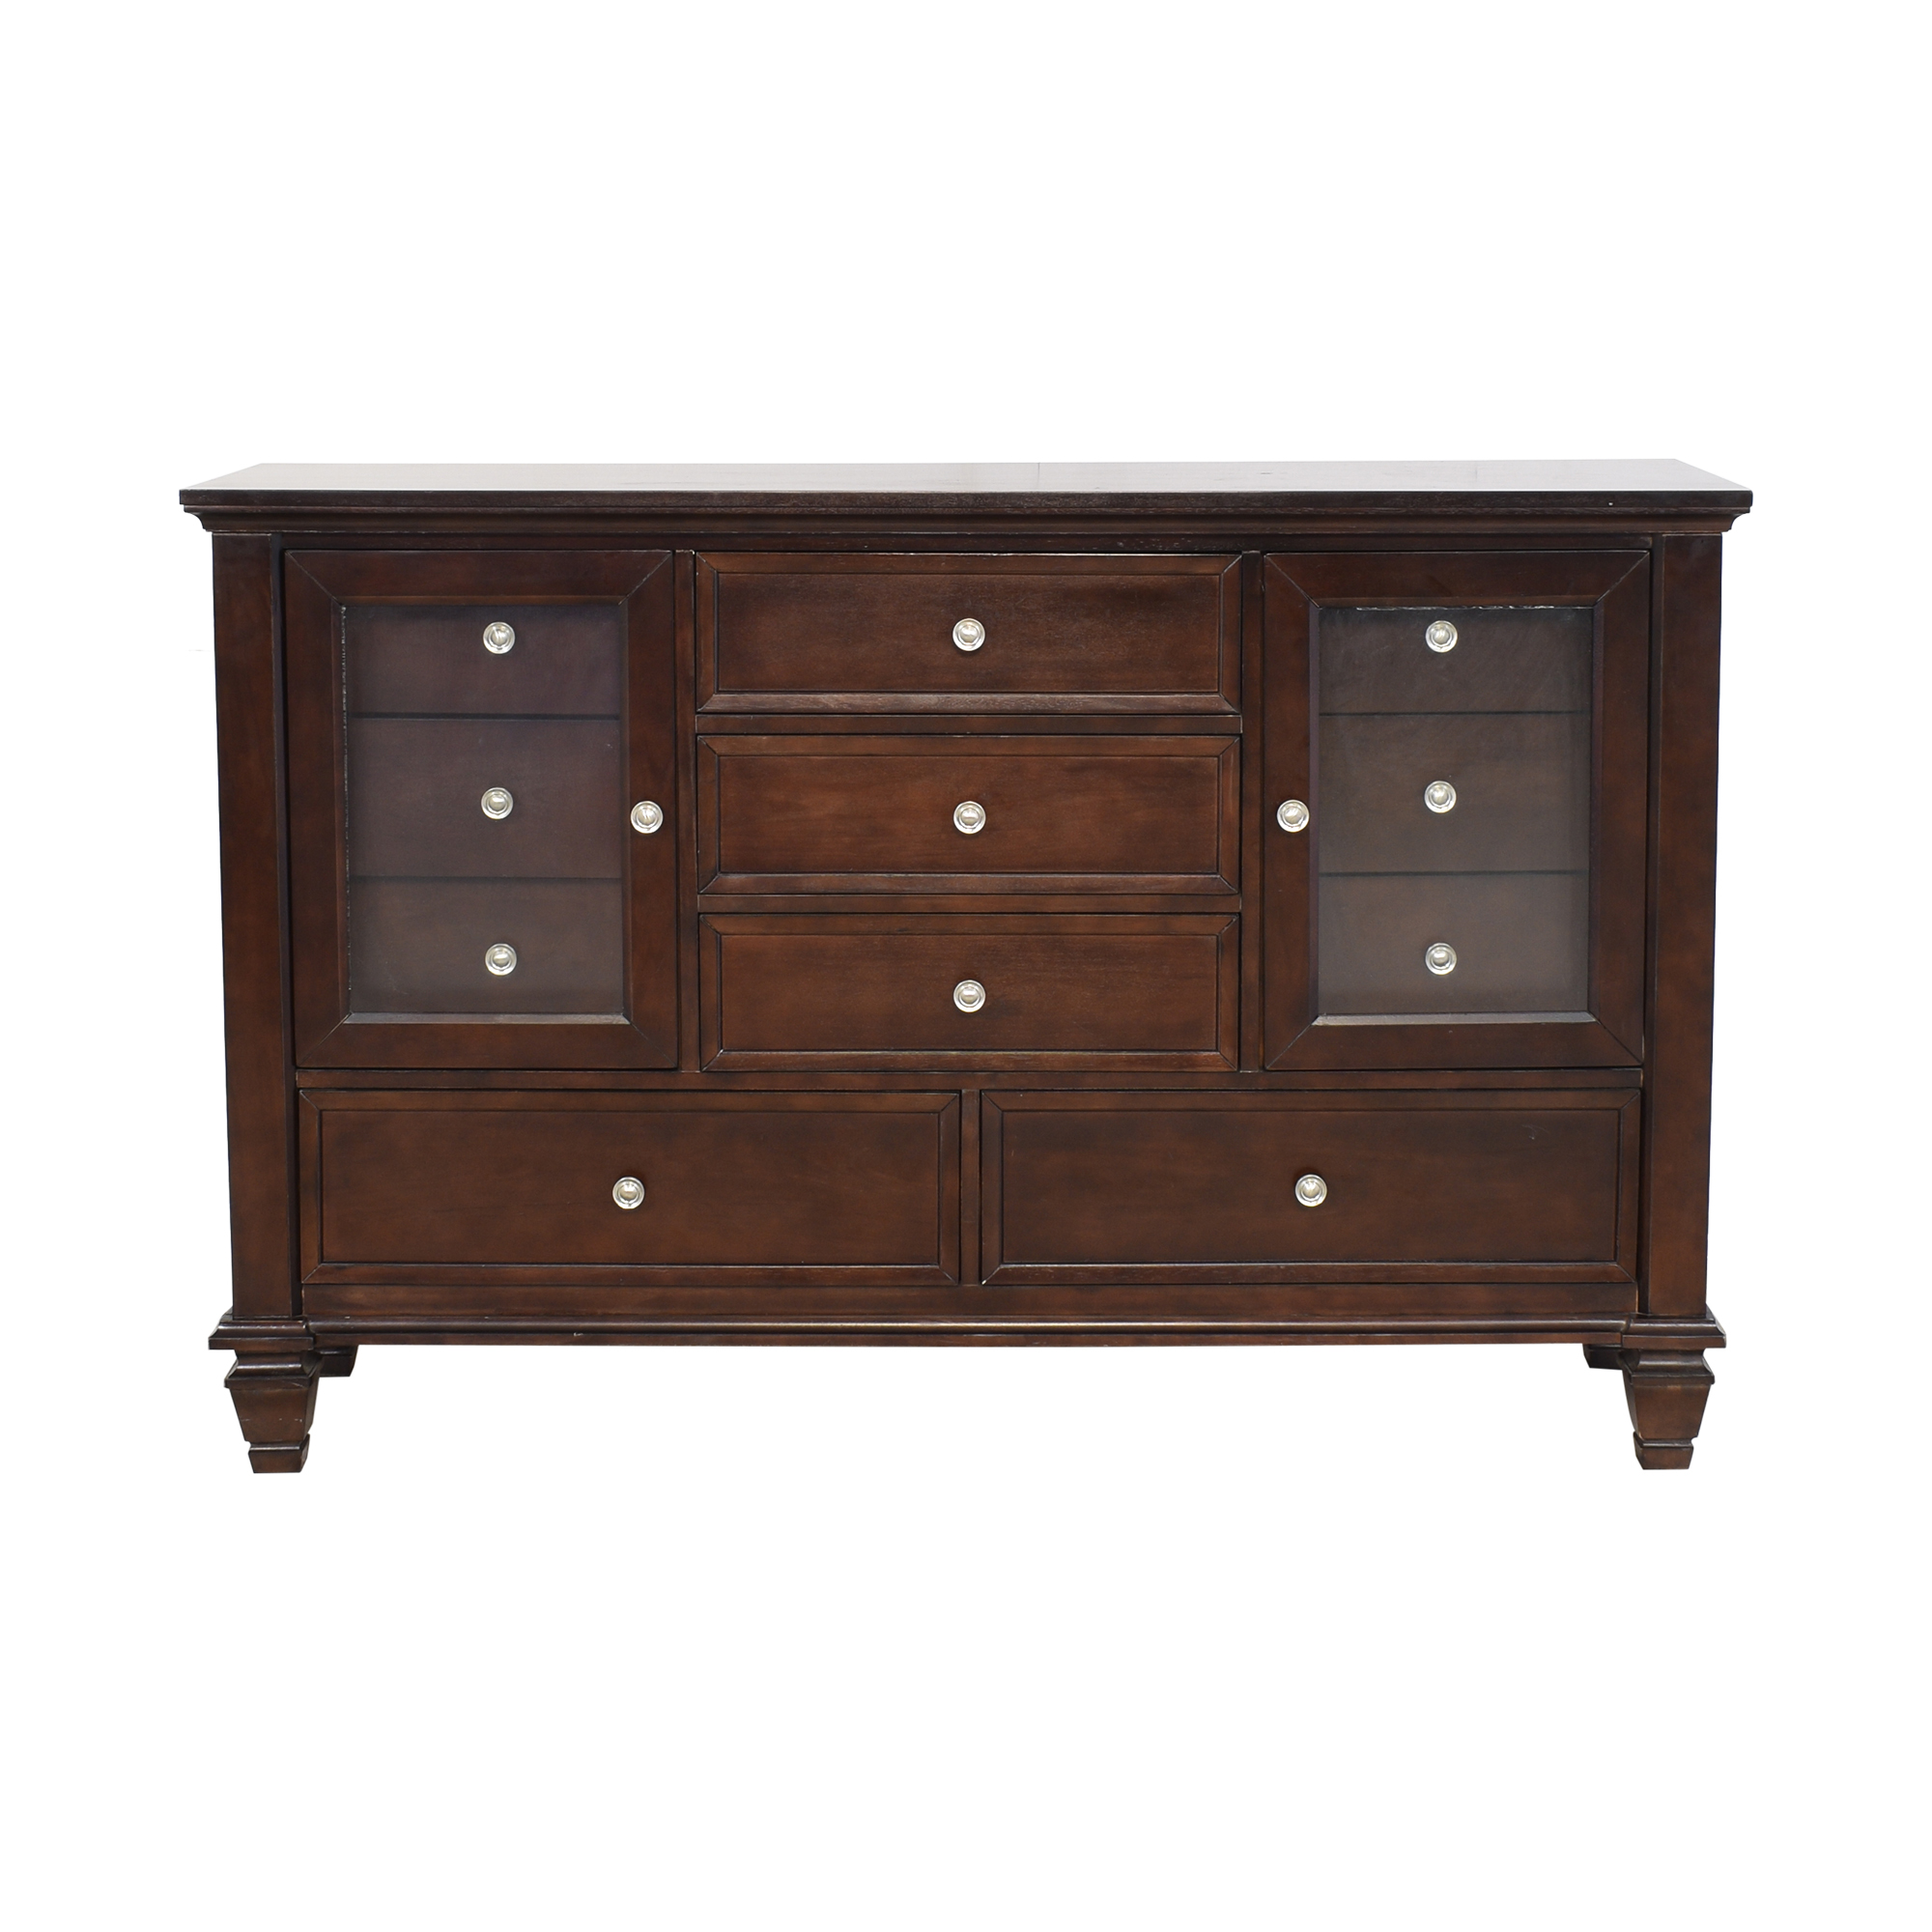 buy Coaster Dresser with Cabinets Coaster Fine Furniture Storage